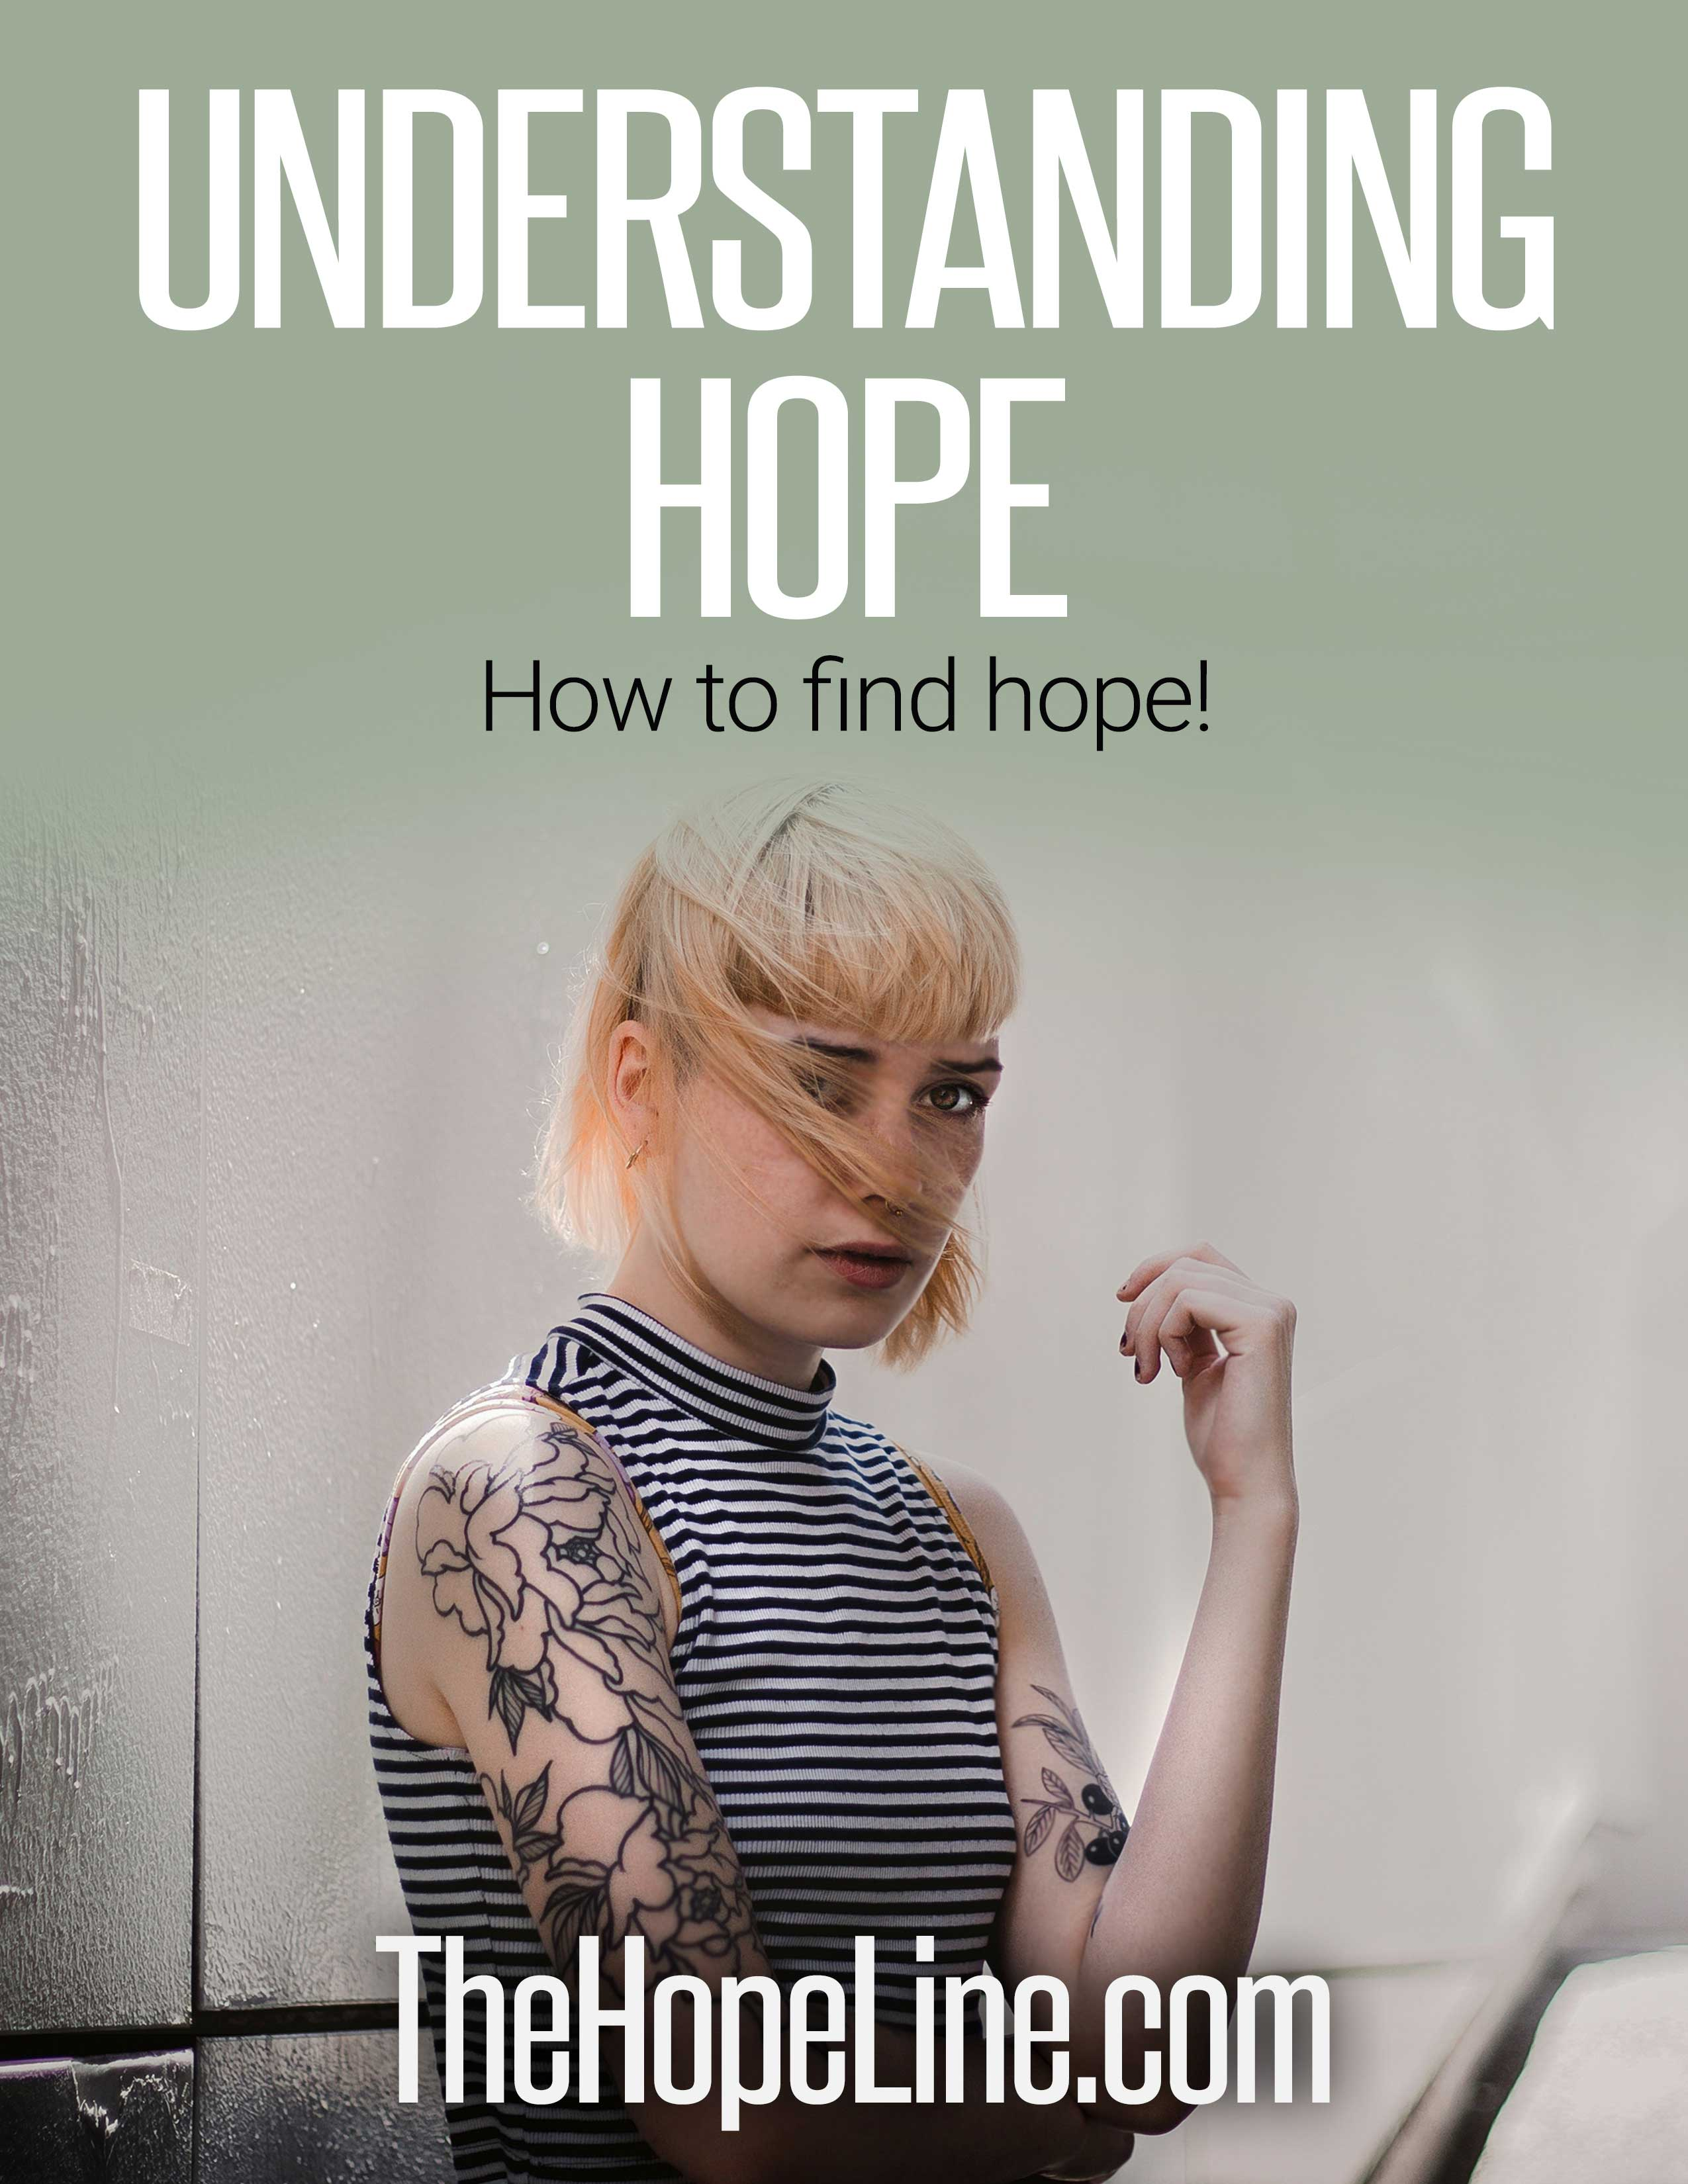 Do feel like life is pointless? Download our Understanding Hope eBook!